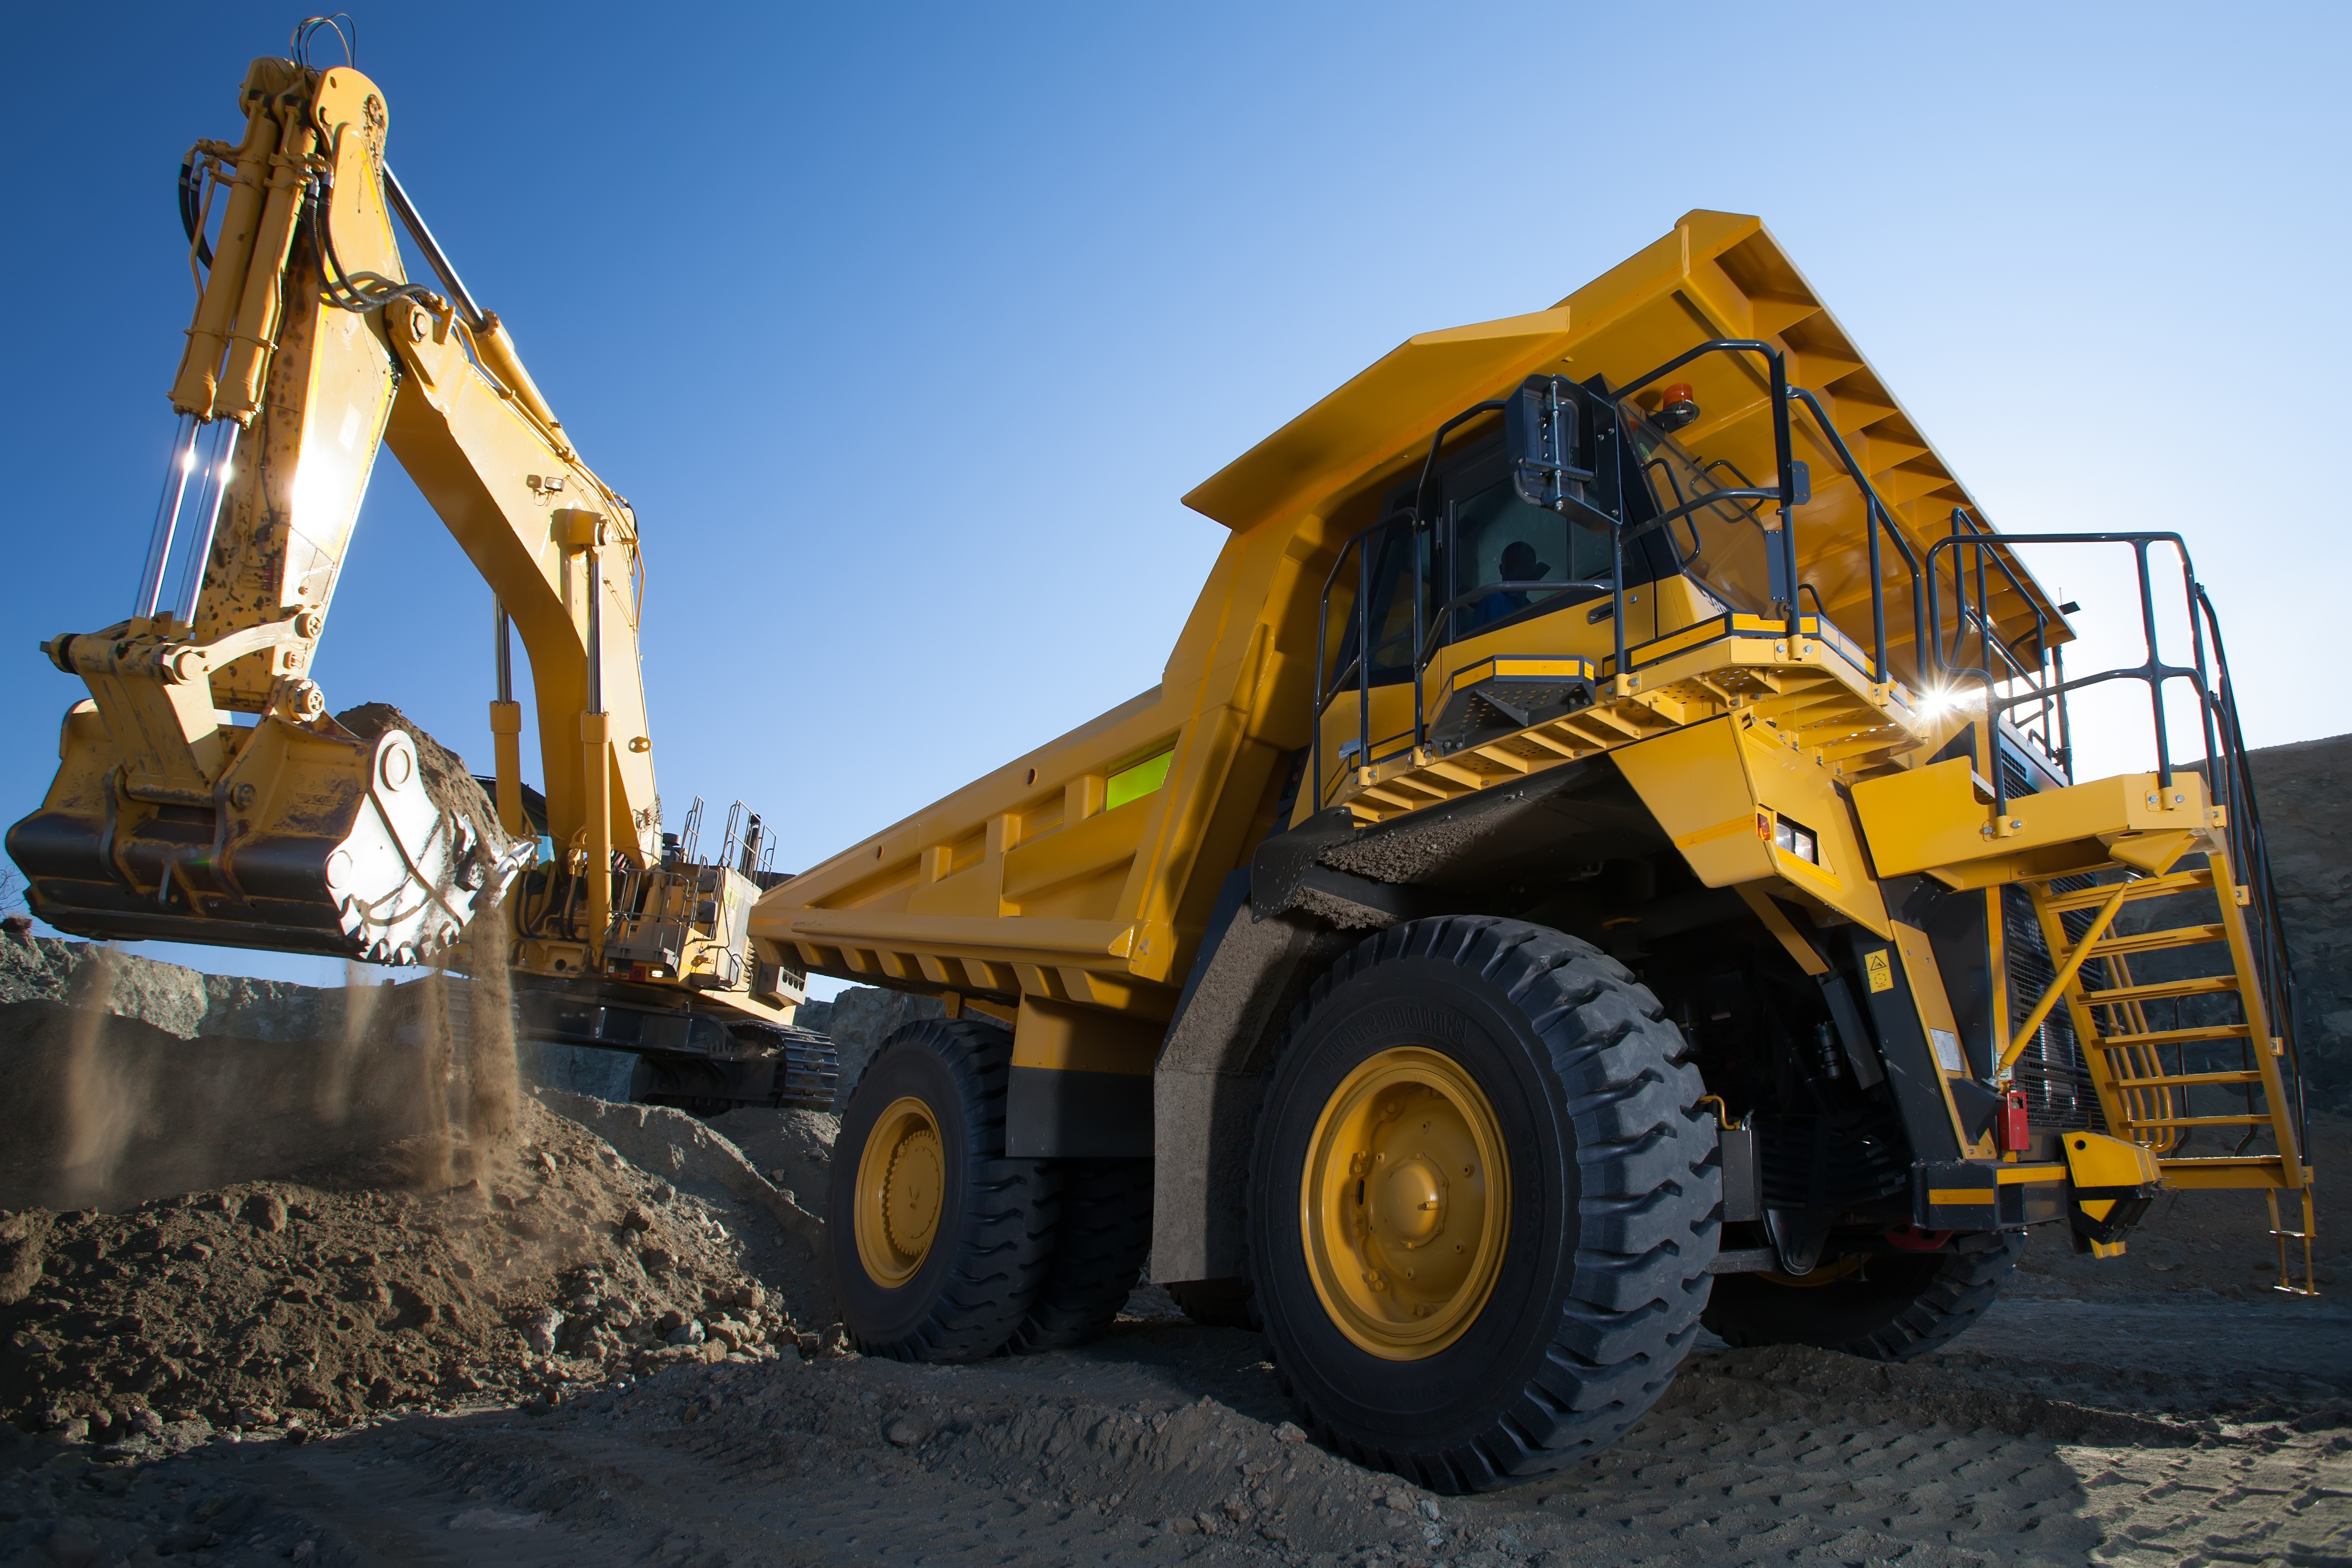 Image of open pit mining operations were equipment like loaders and trucks require mobile fueling operations.